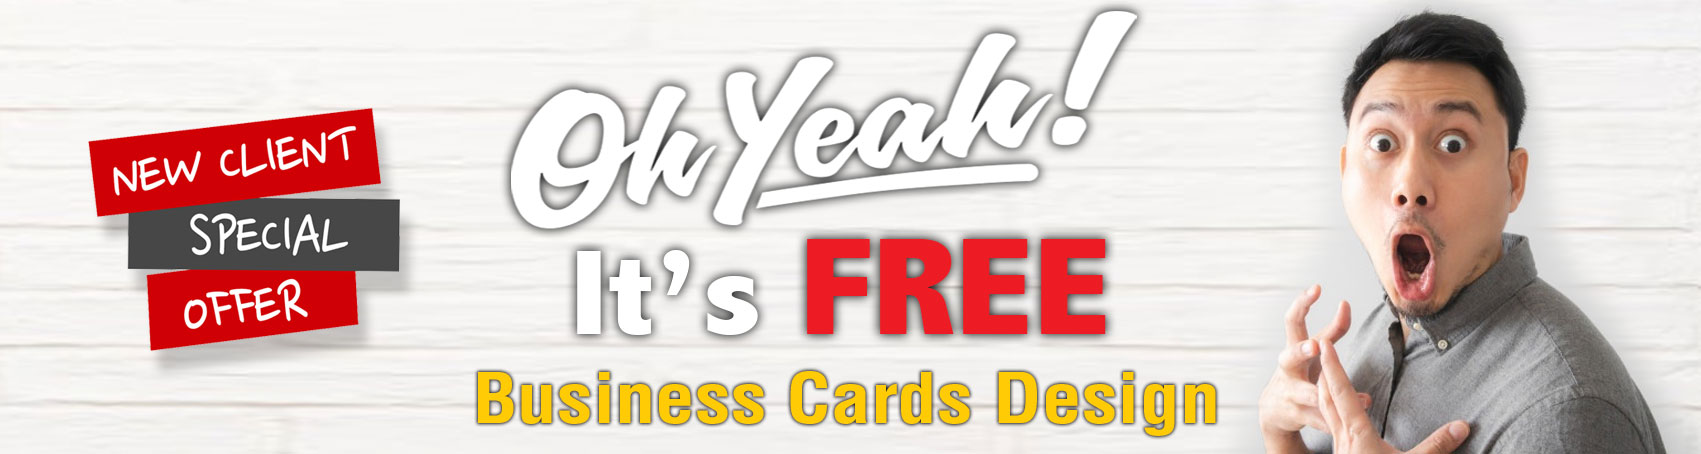 Free Business Cards Design